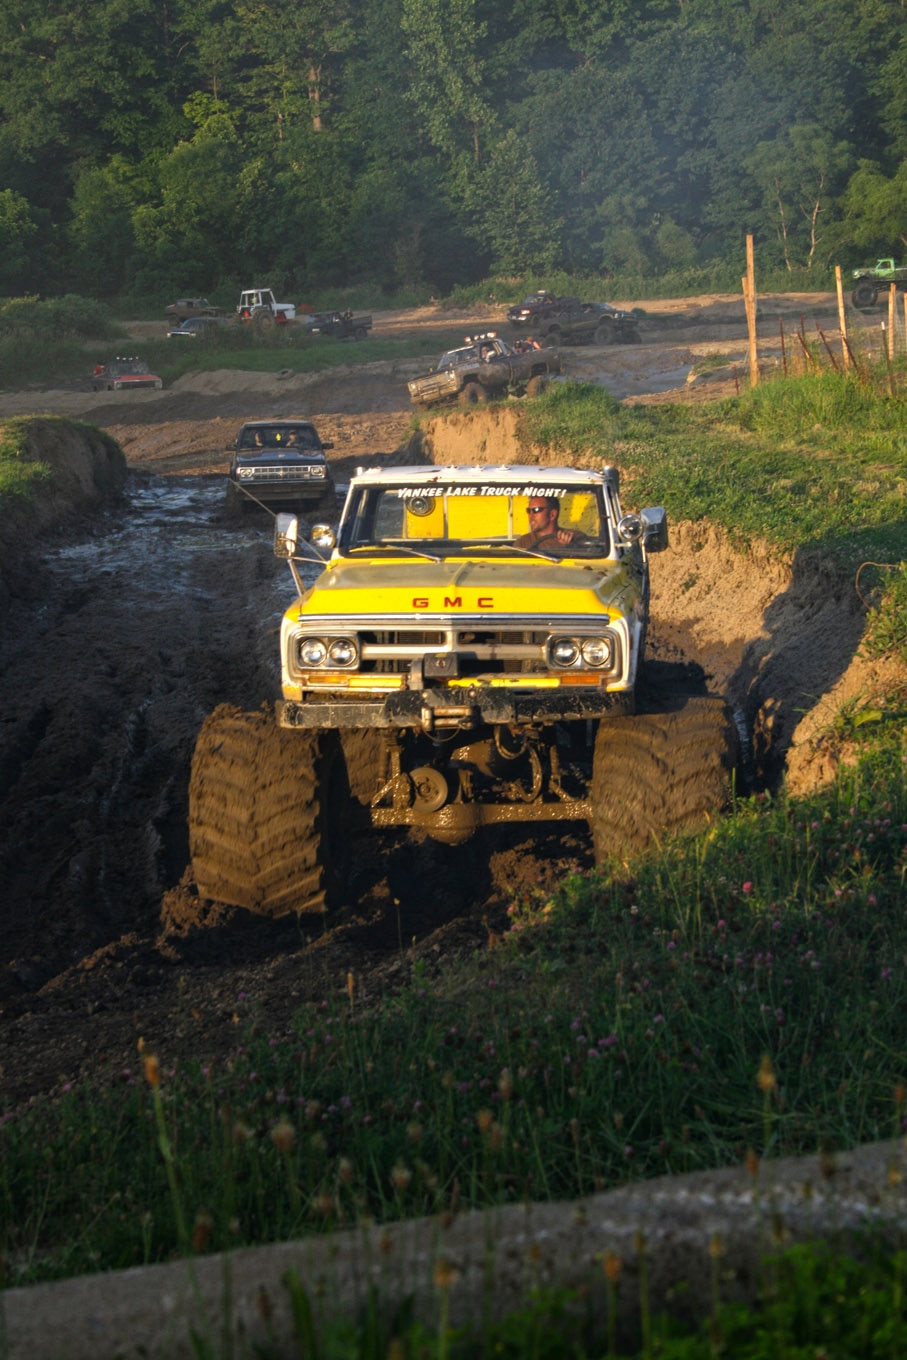 This second-gen GMC with Rockwell axles and monster truck rubbers made quick work of the mud drags.